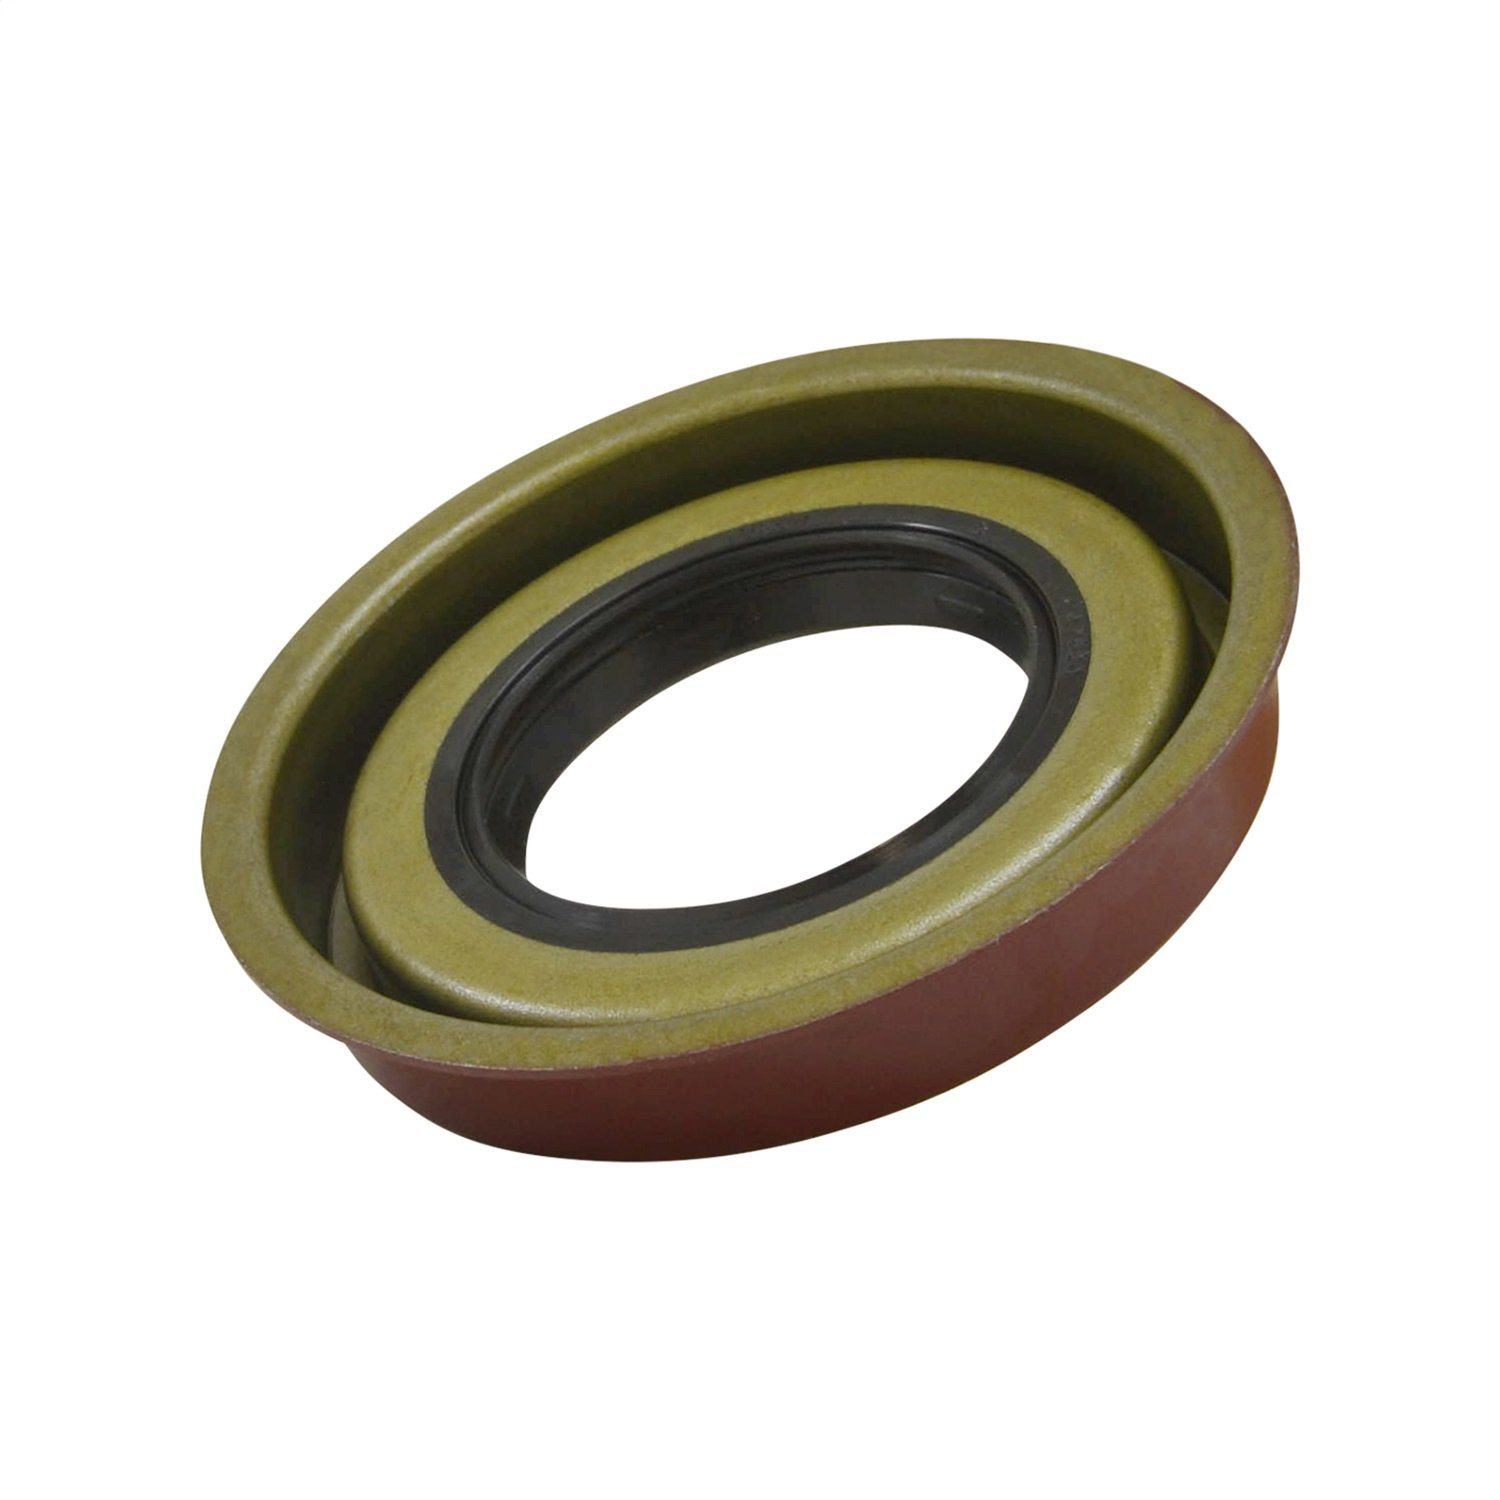 Axle Seal for GM Chevy C10 8.5 Differential Yukon Gear /& Axle YMS4762N